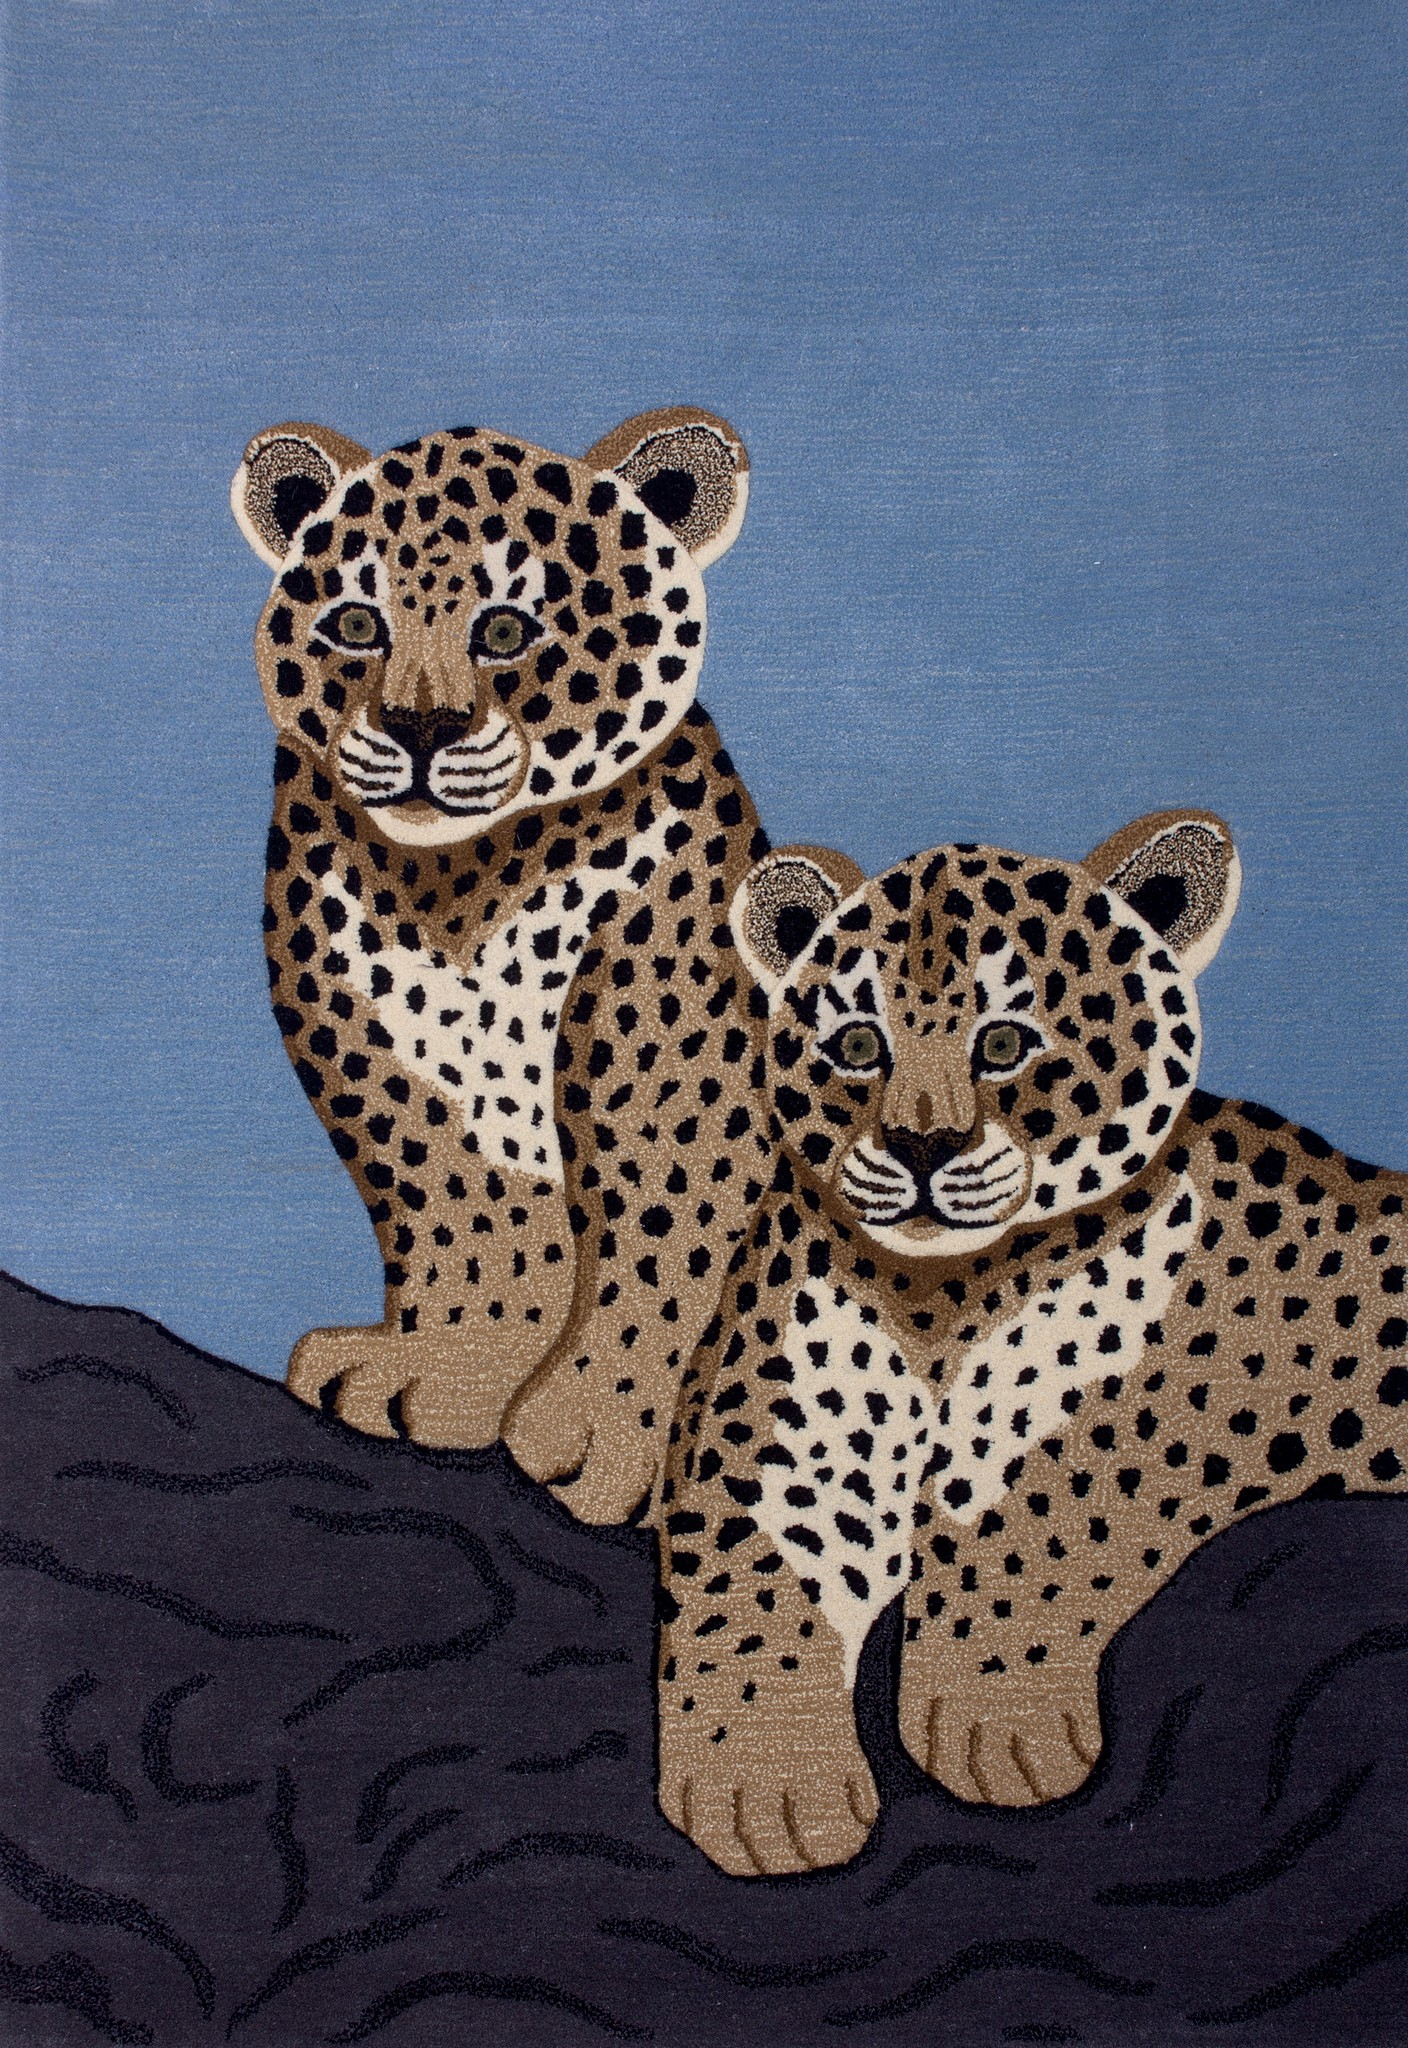 BBN-195 (Leopards)-120x180,170x240